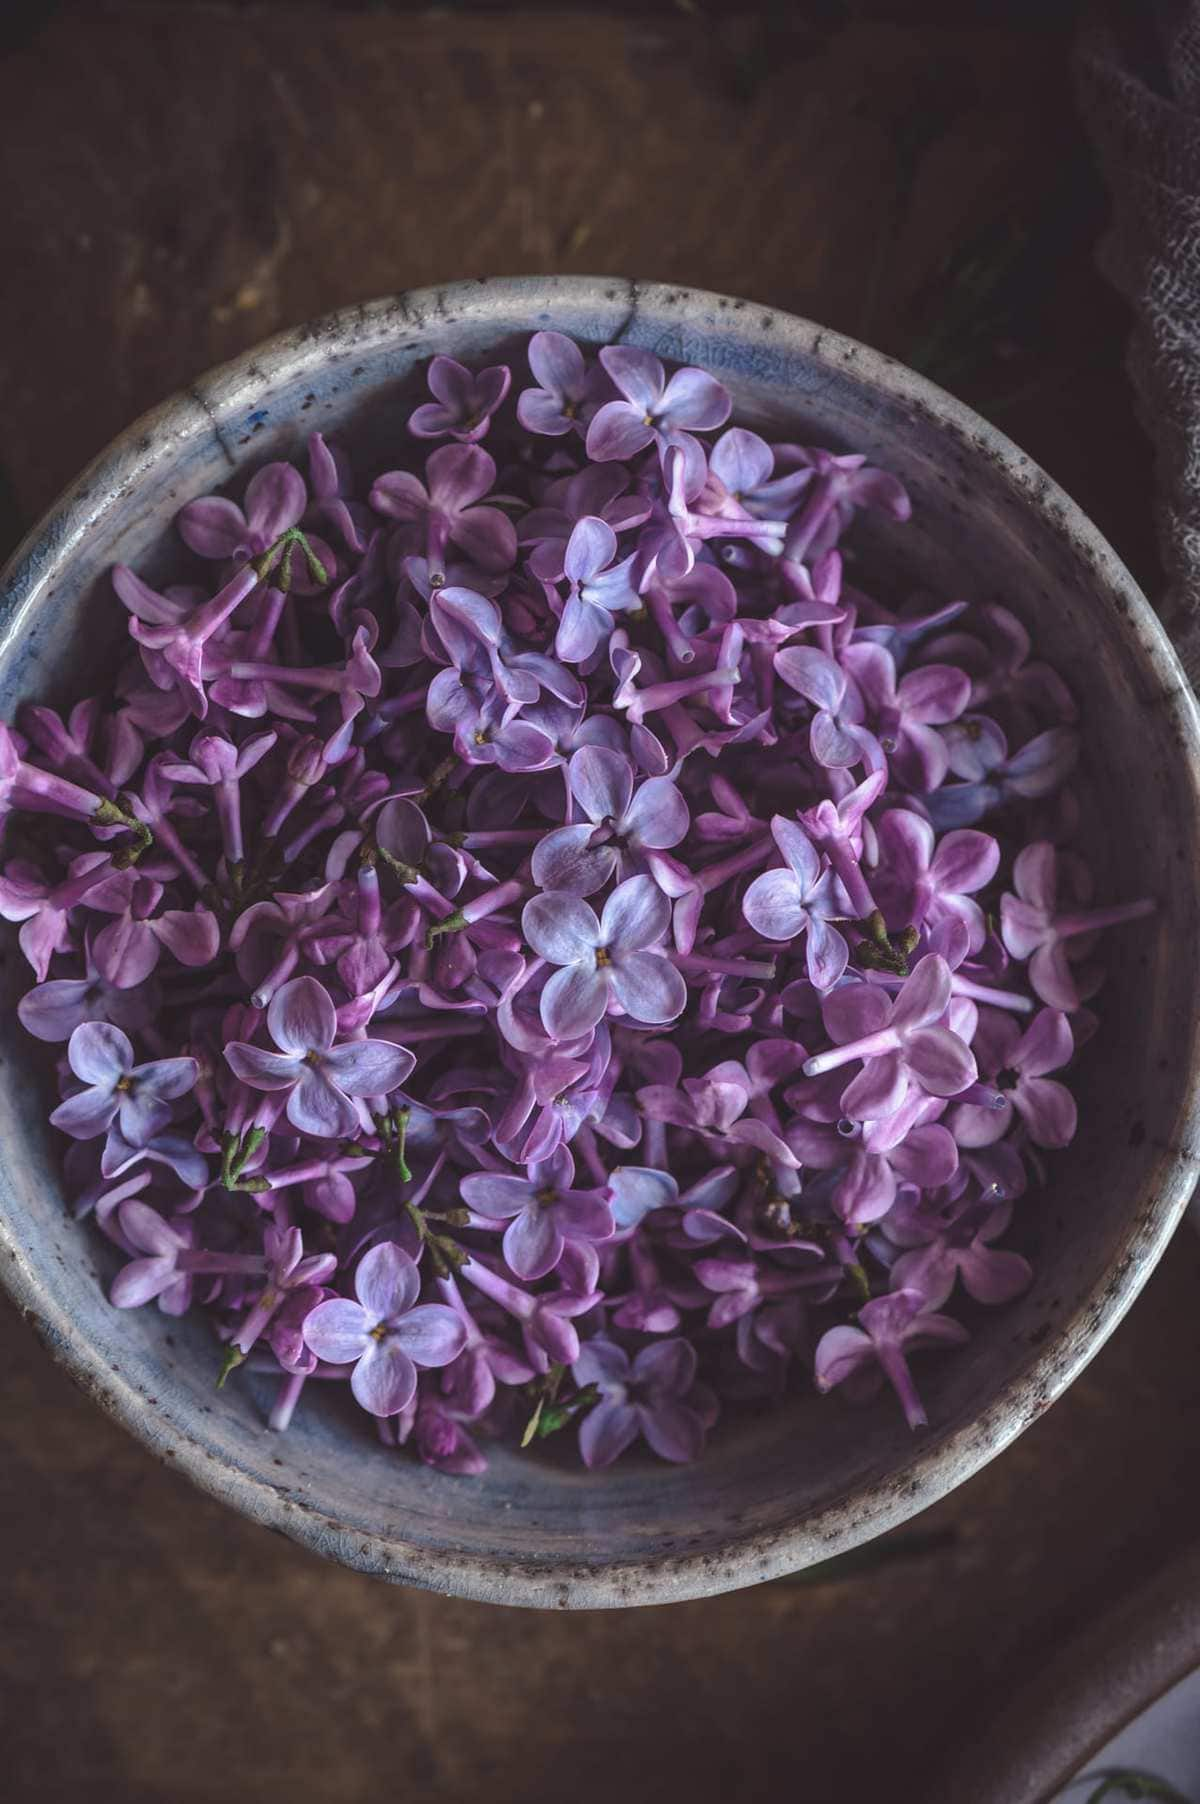 lilac flowers in bowl